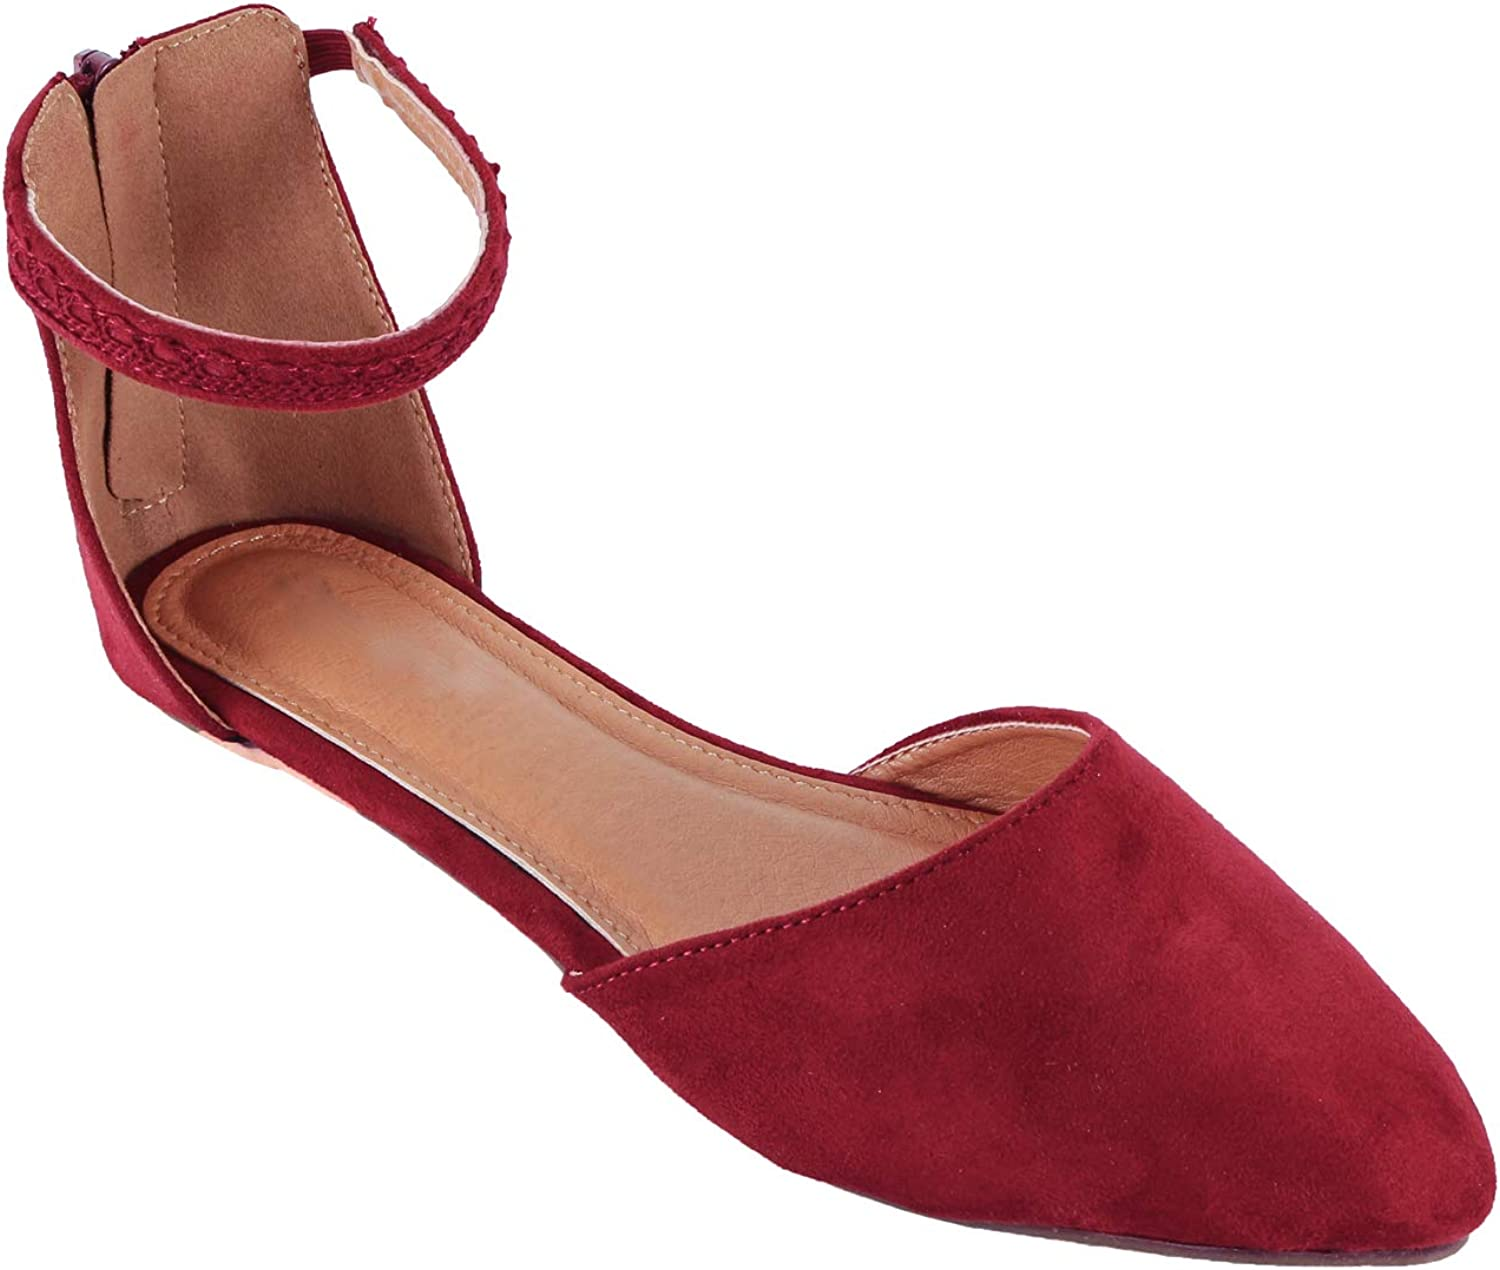 Guilty Heart Womens D'Orsay Pointy Toe Ankle Strap Buckle Comfort Ballerina Ballet Flats shoes